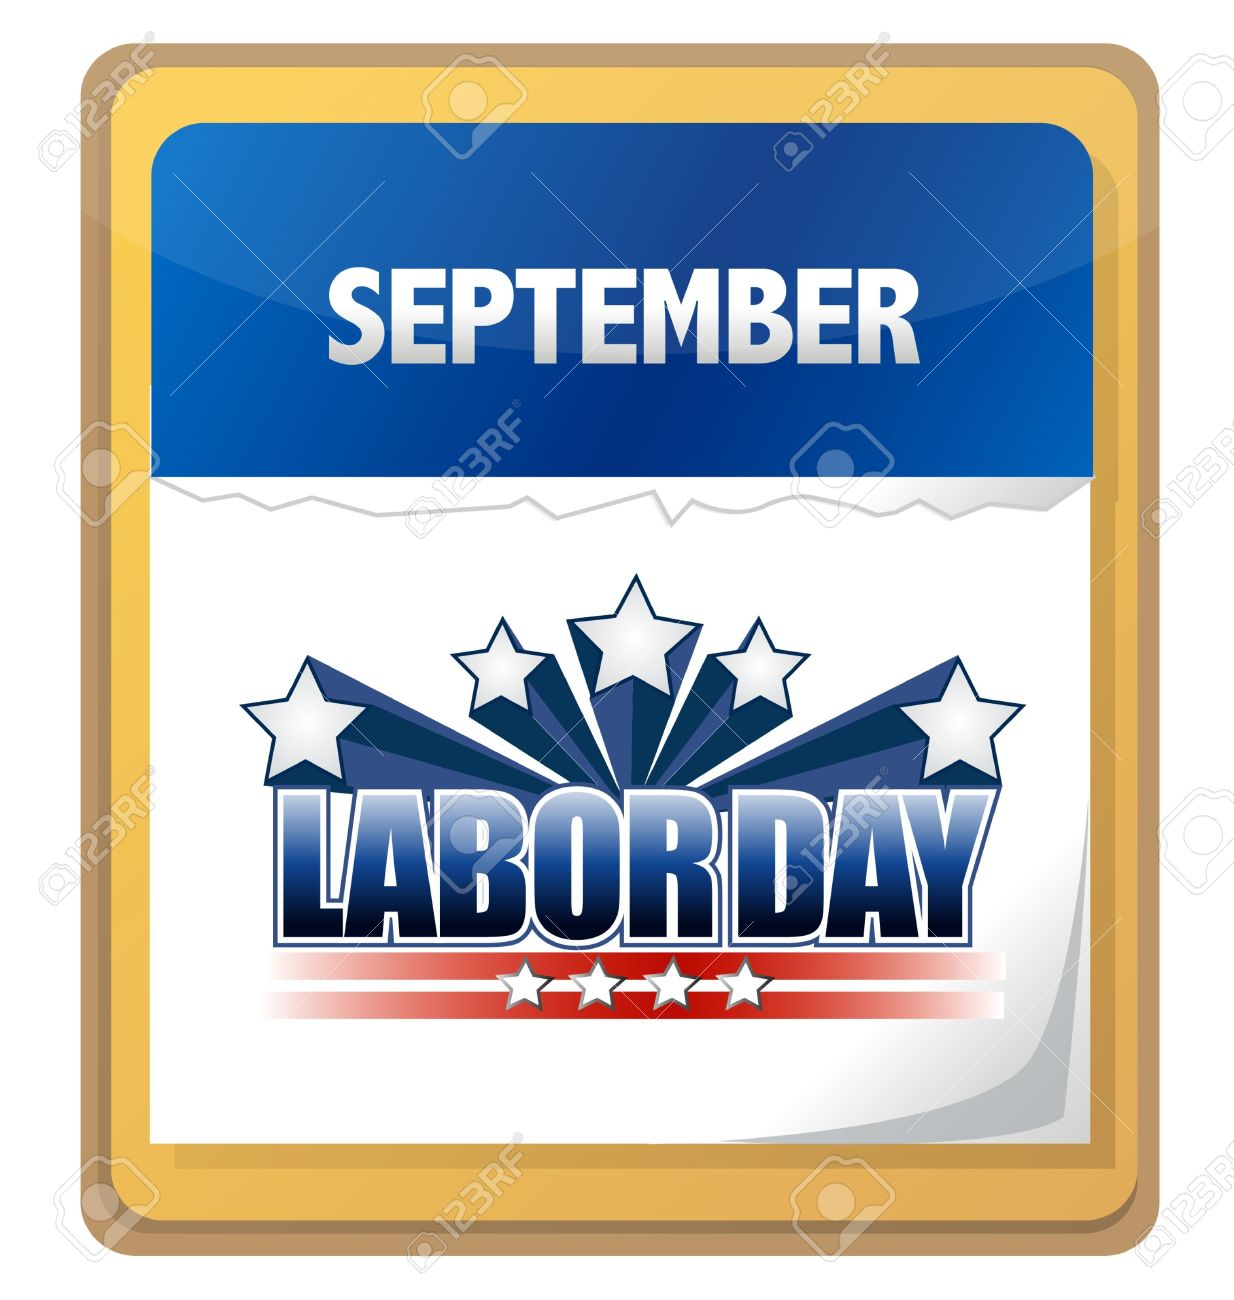 September Labor Day Calendar Clipart.